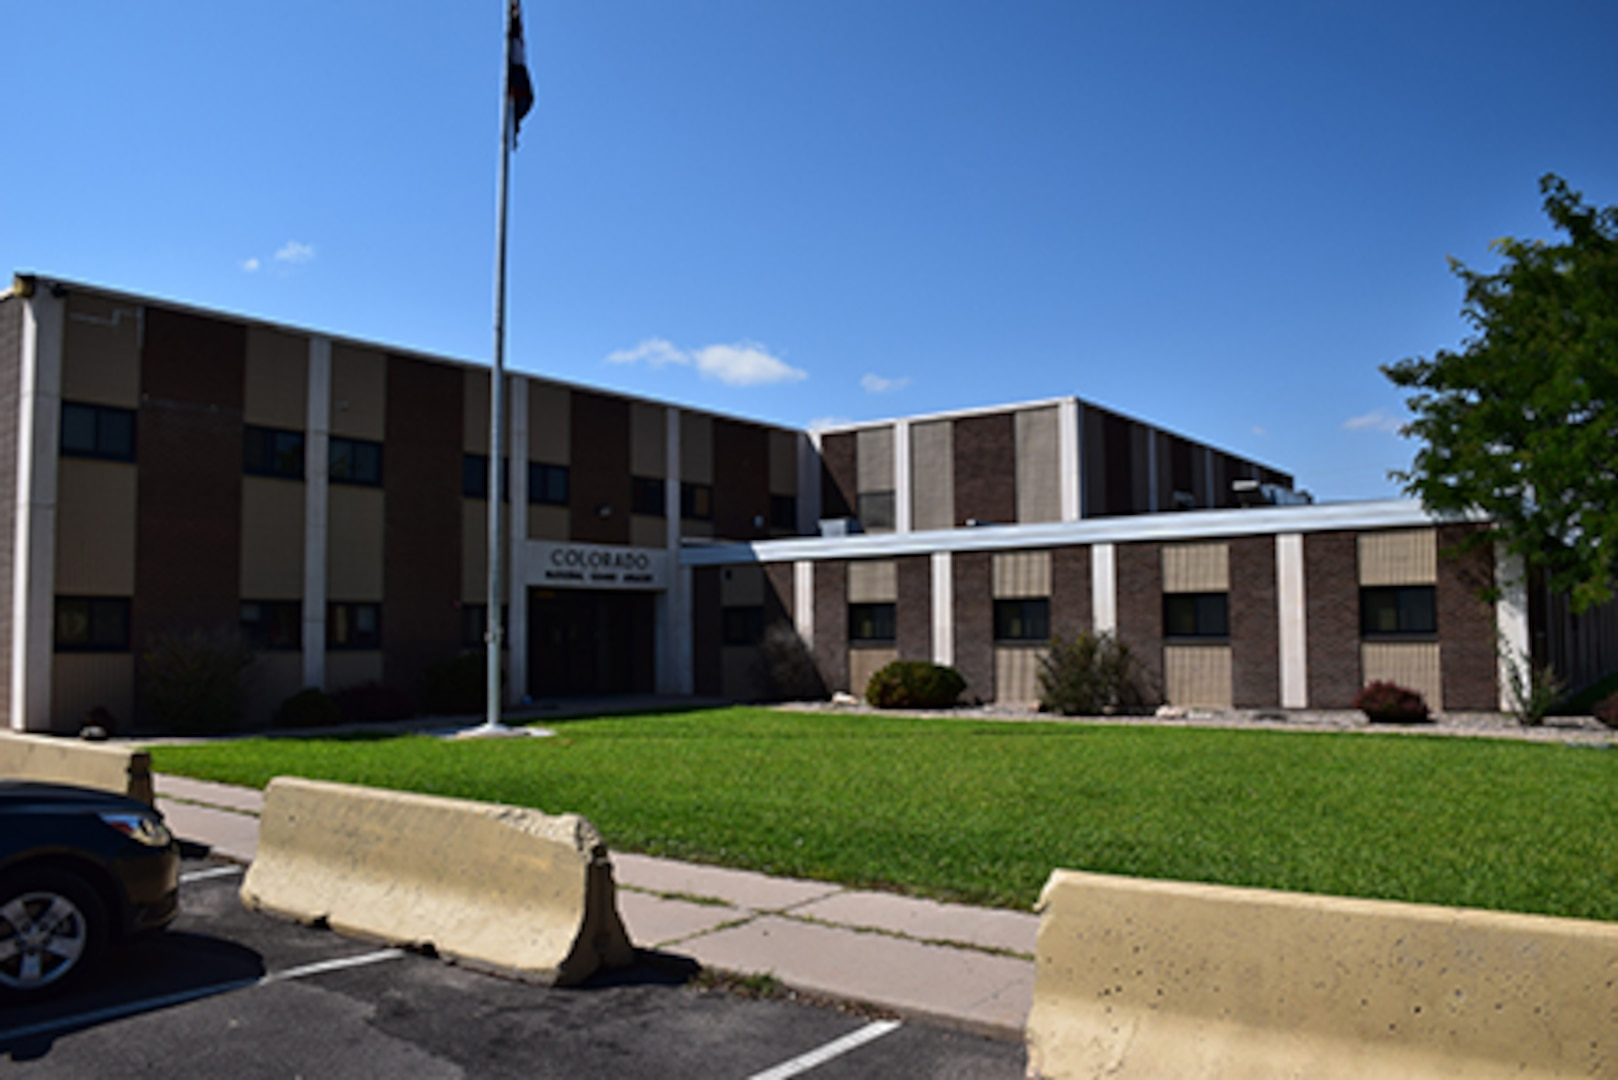 The Colorado Army National Guard armory in Pueblo, Colorado, June 18, 2015. The Adjutant General of Colorado and senior leaders of the Department of Military and Veterans Affairs and Colorado National Guard visit COARNG facilities annually to meet face-to-face with full-time unit members. (U.S. Army National Guard photo by Staff Sgt. Joseph K. VonNida/Released)